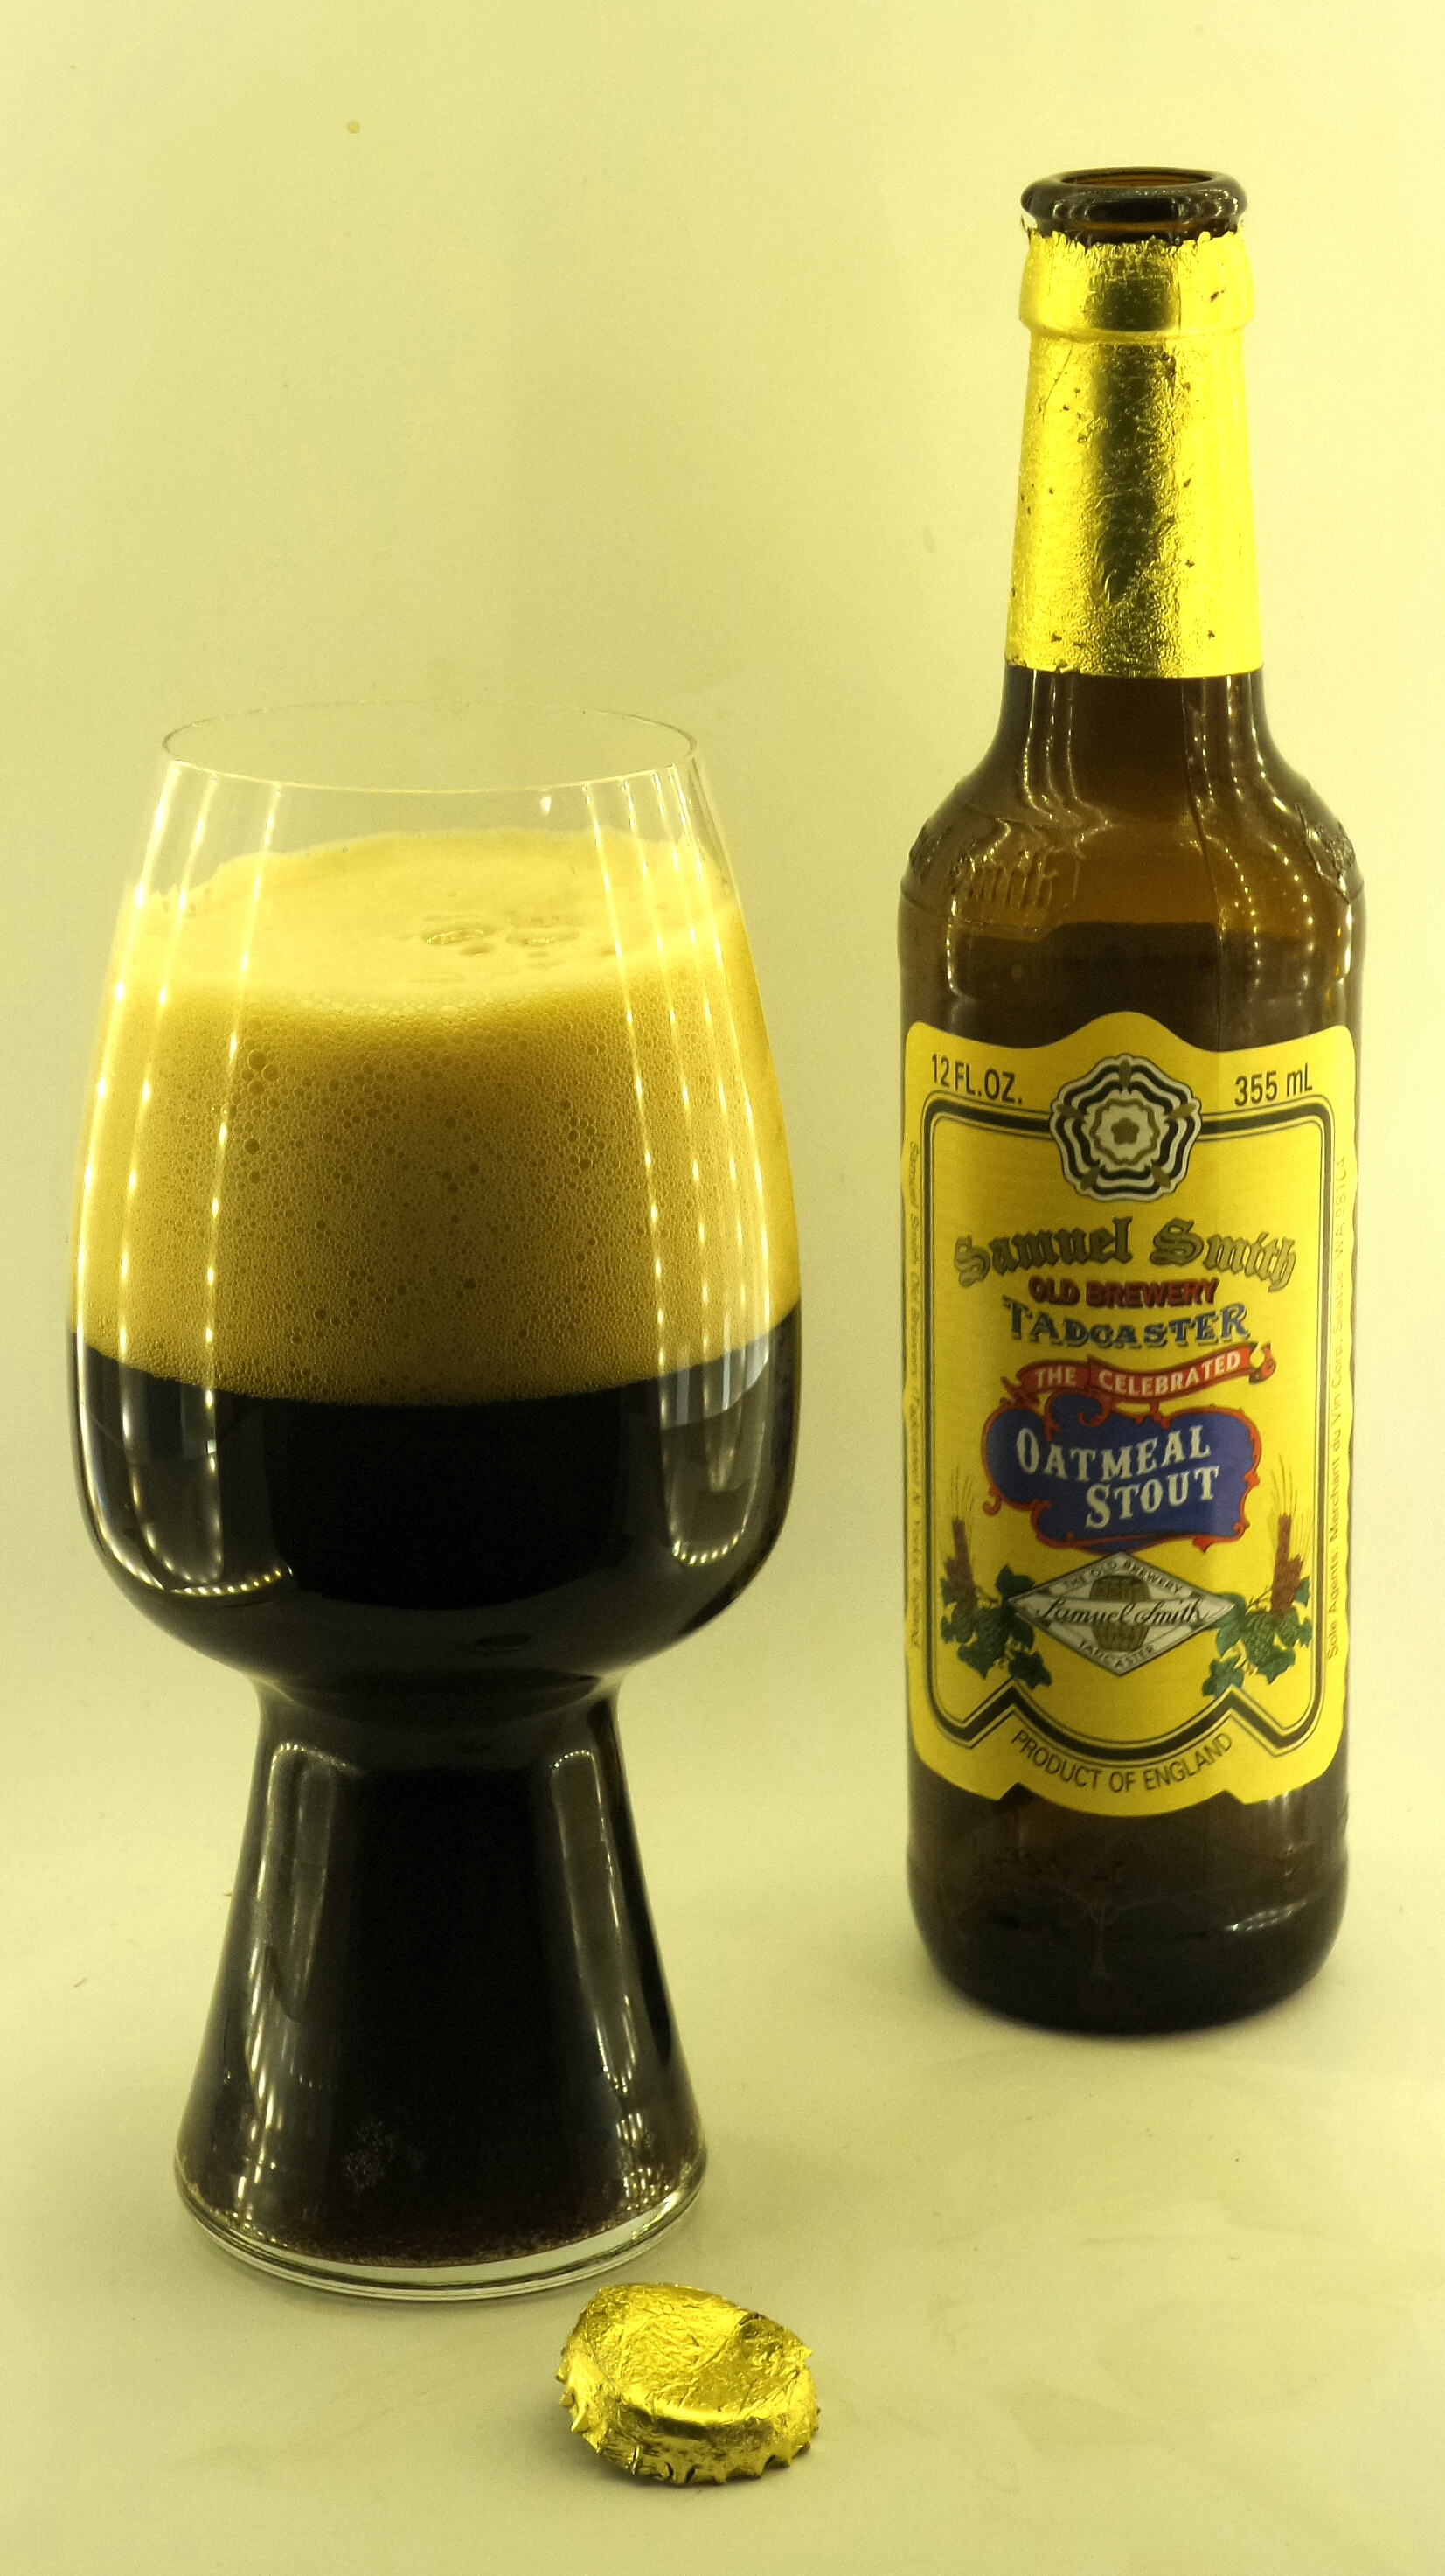 Samuel Smith Tadcaster Oatmeal Stout